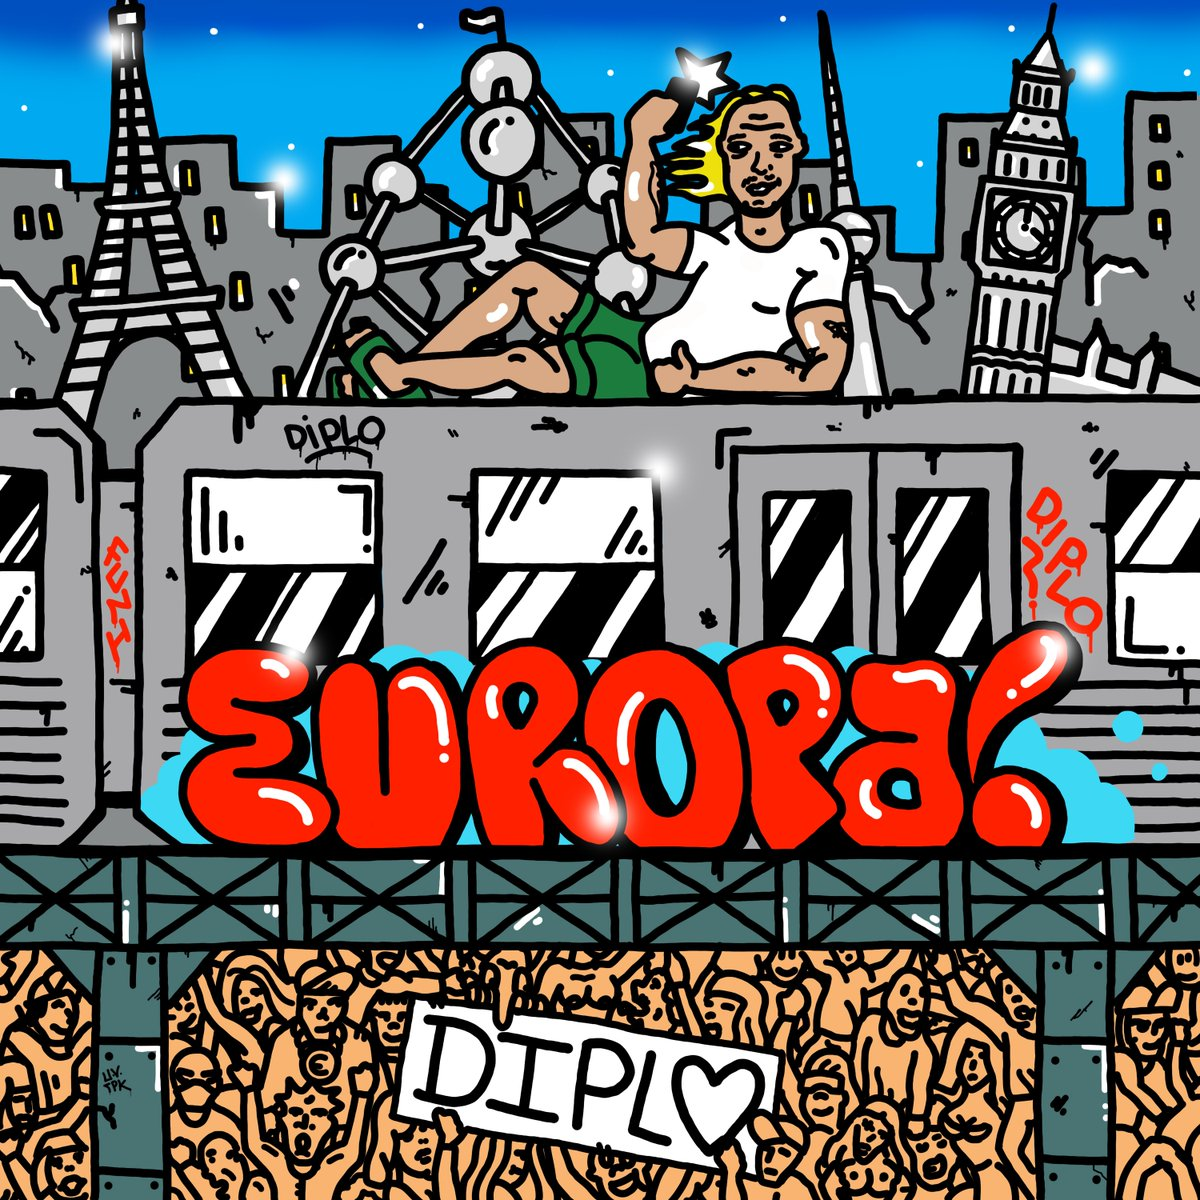 Fall In Love with Diplo's 'Europa' EP ft. Octavian, Niska & More [LISTEN]